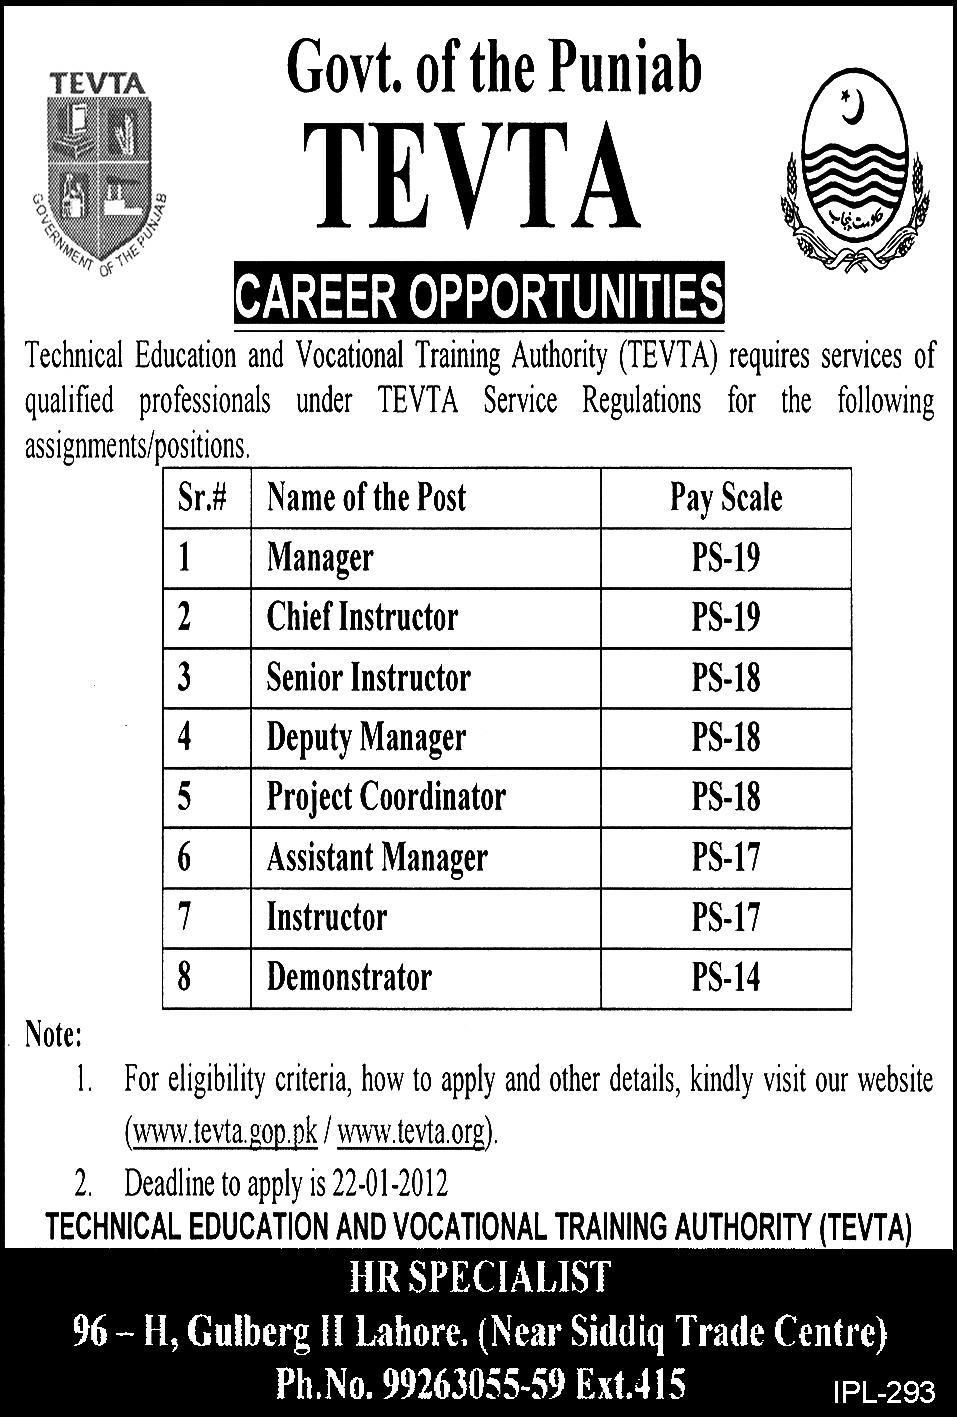 TEVTA Government of the Punjab Jobs Opportunity